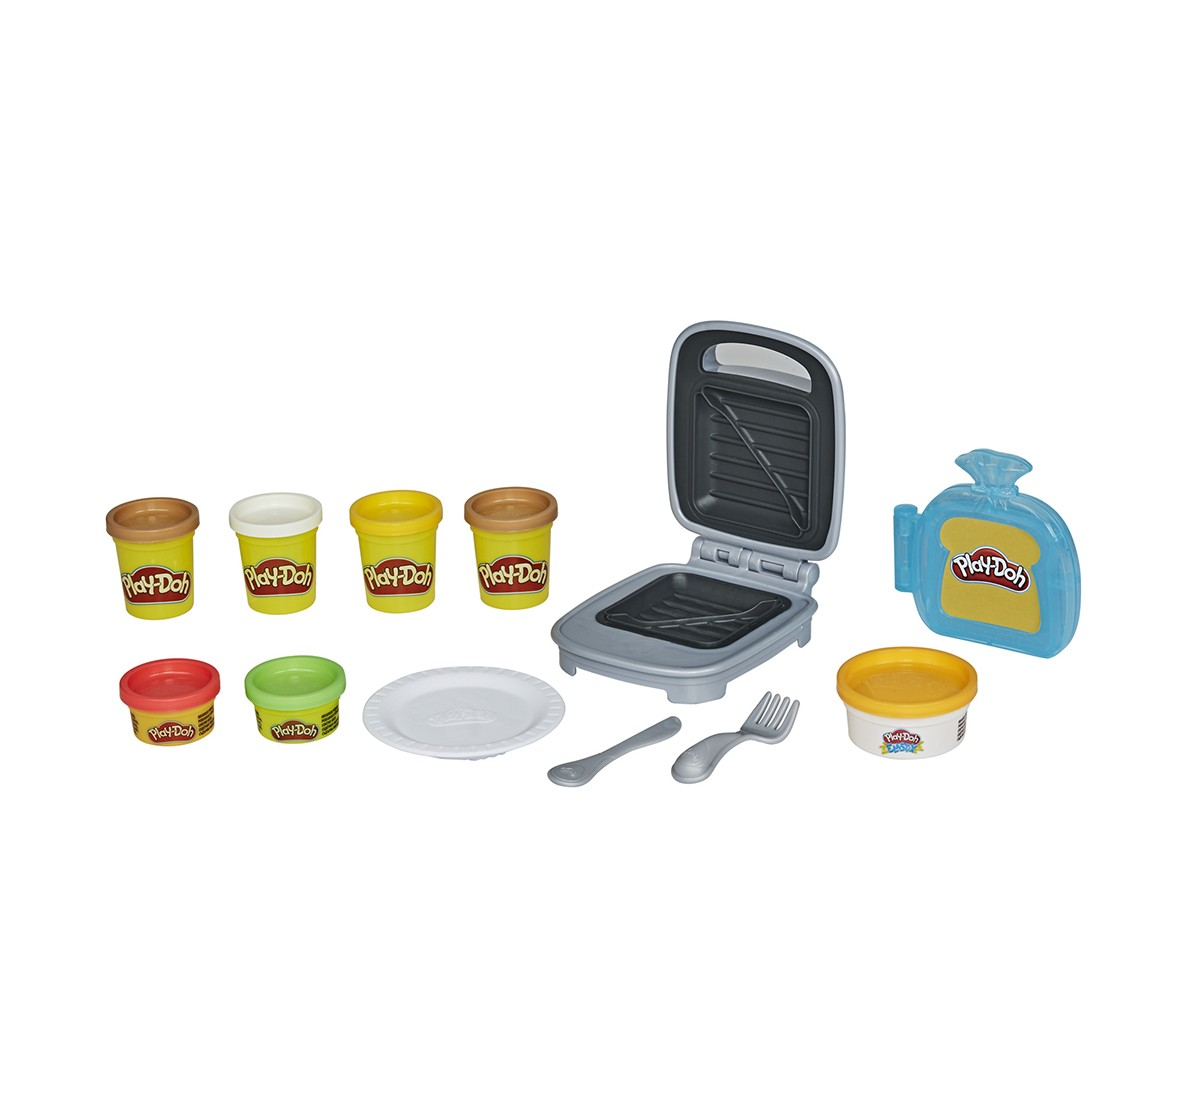 Play-Doh Kitchen Creations Cheesy Sandwich Play Food Set for Kids 3 Years and Up With Play-Doh Elastix Compound and 6 Additional Colors Clay & Dough for Kids age 3Y+